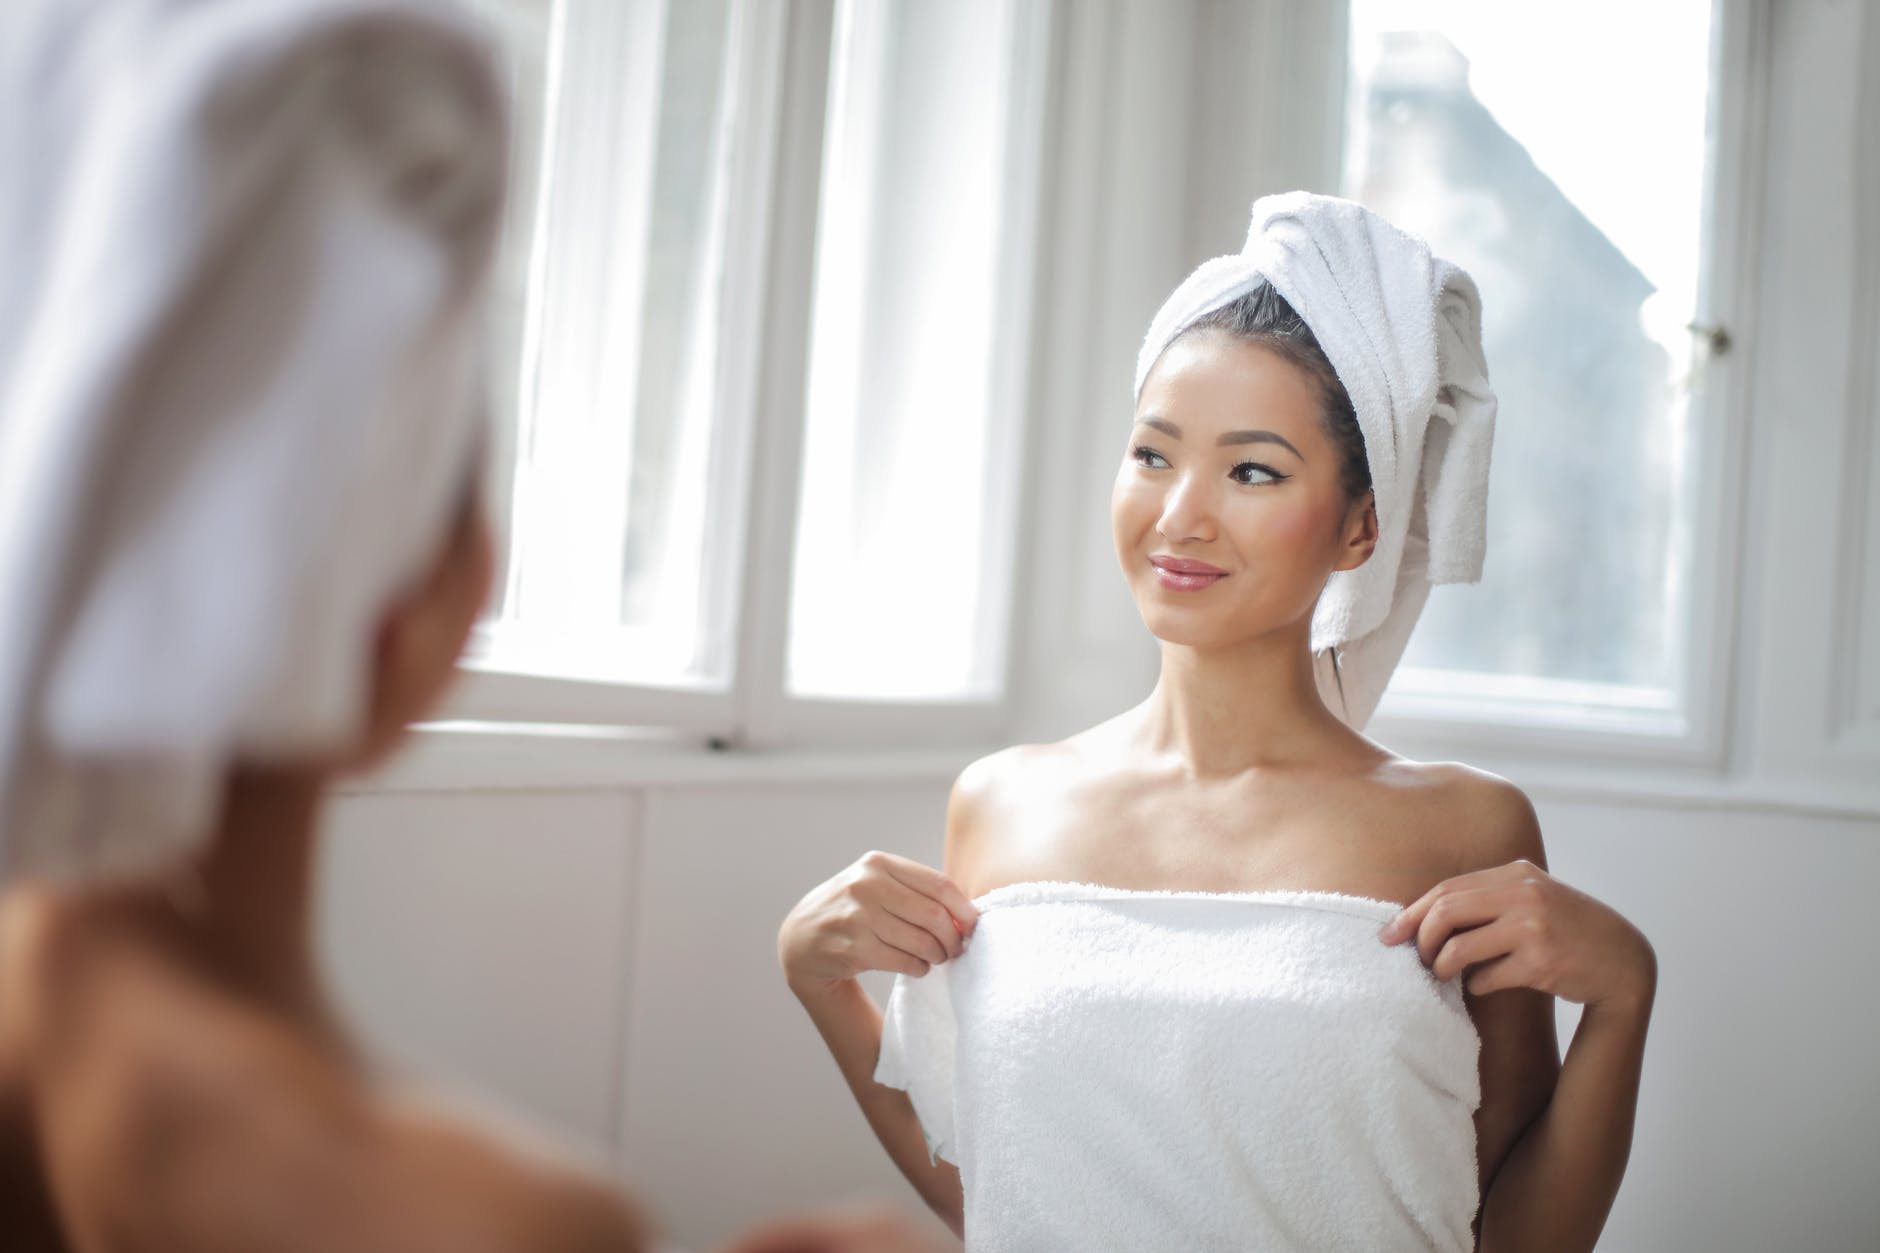 woman in white towel standing in front of the mirror